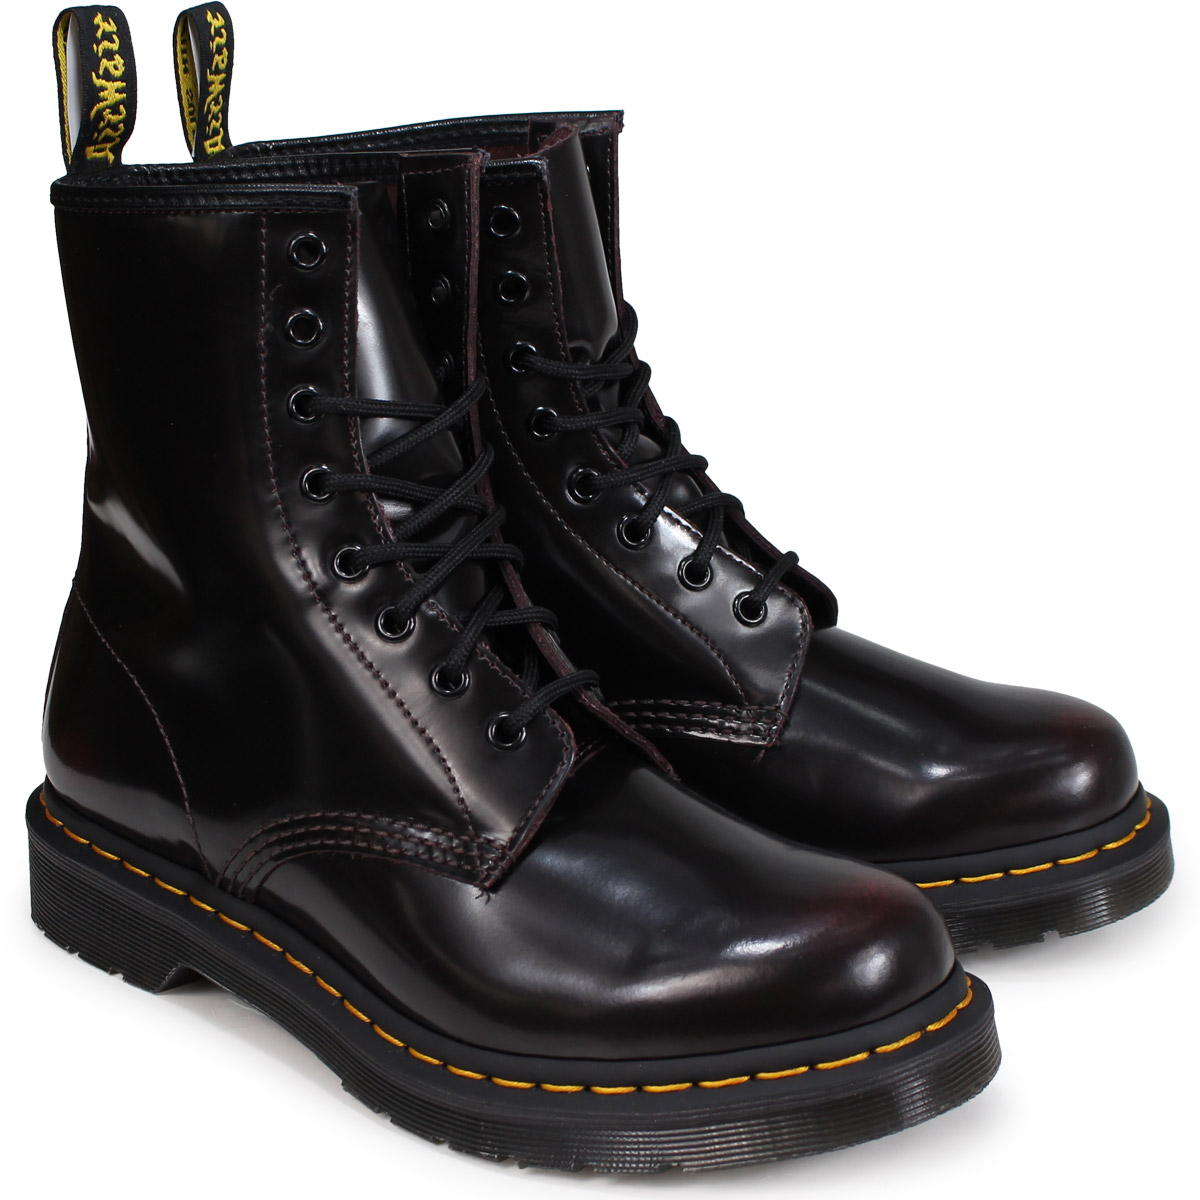 up-to-datestyling half off hot-selling genuine Dr.Martens WOMENS CORE 8EYE BOOT doctor Martin 8 hall 1460 boots Lady's men  wine red R13661601